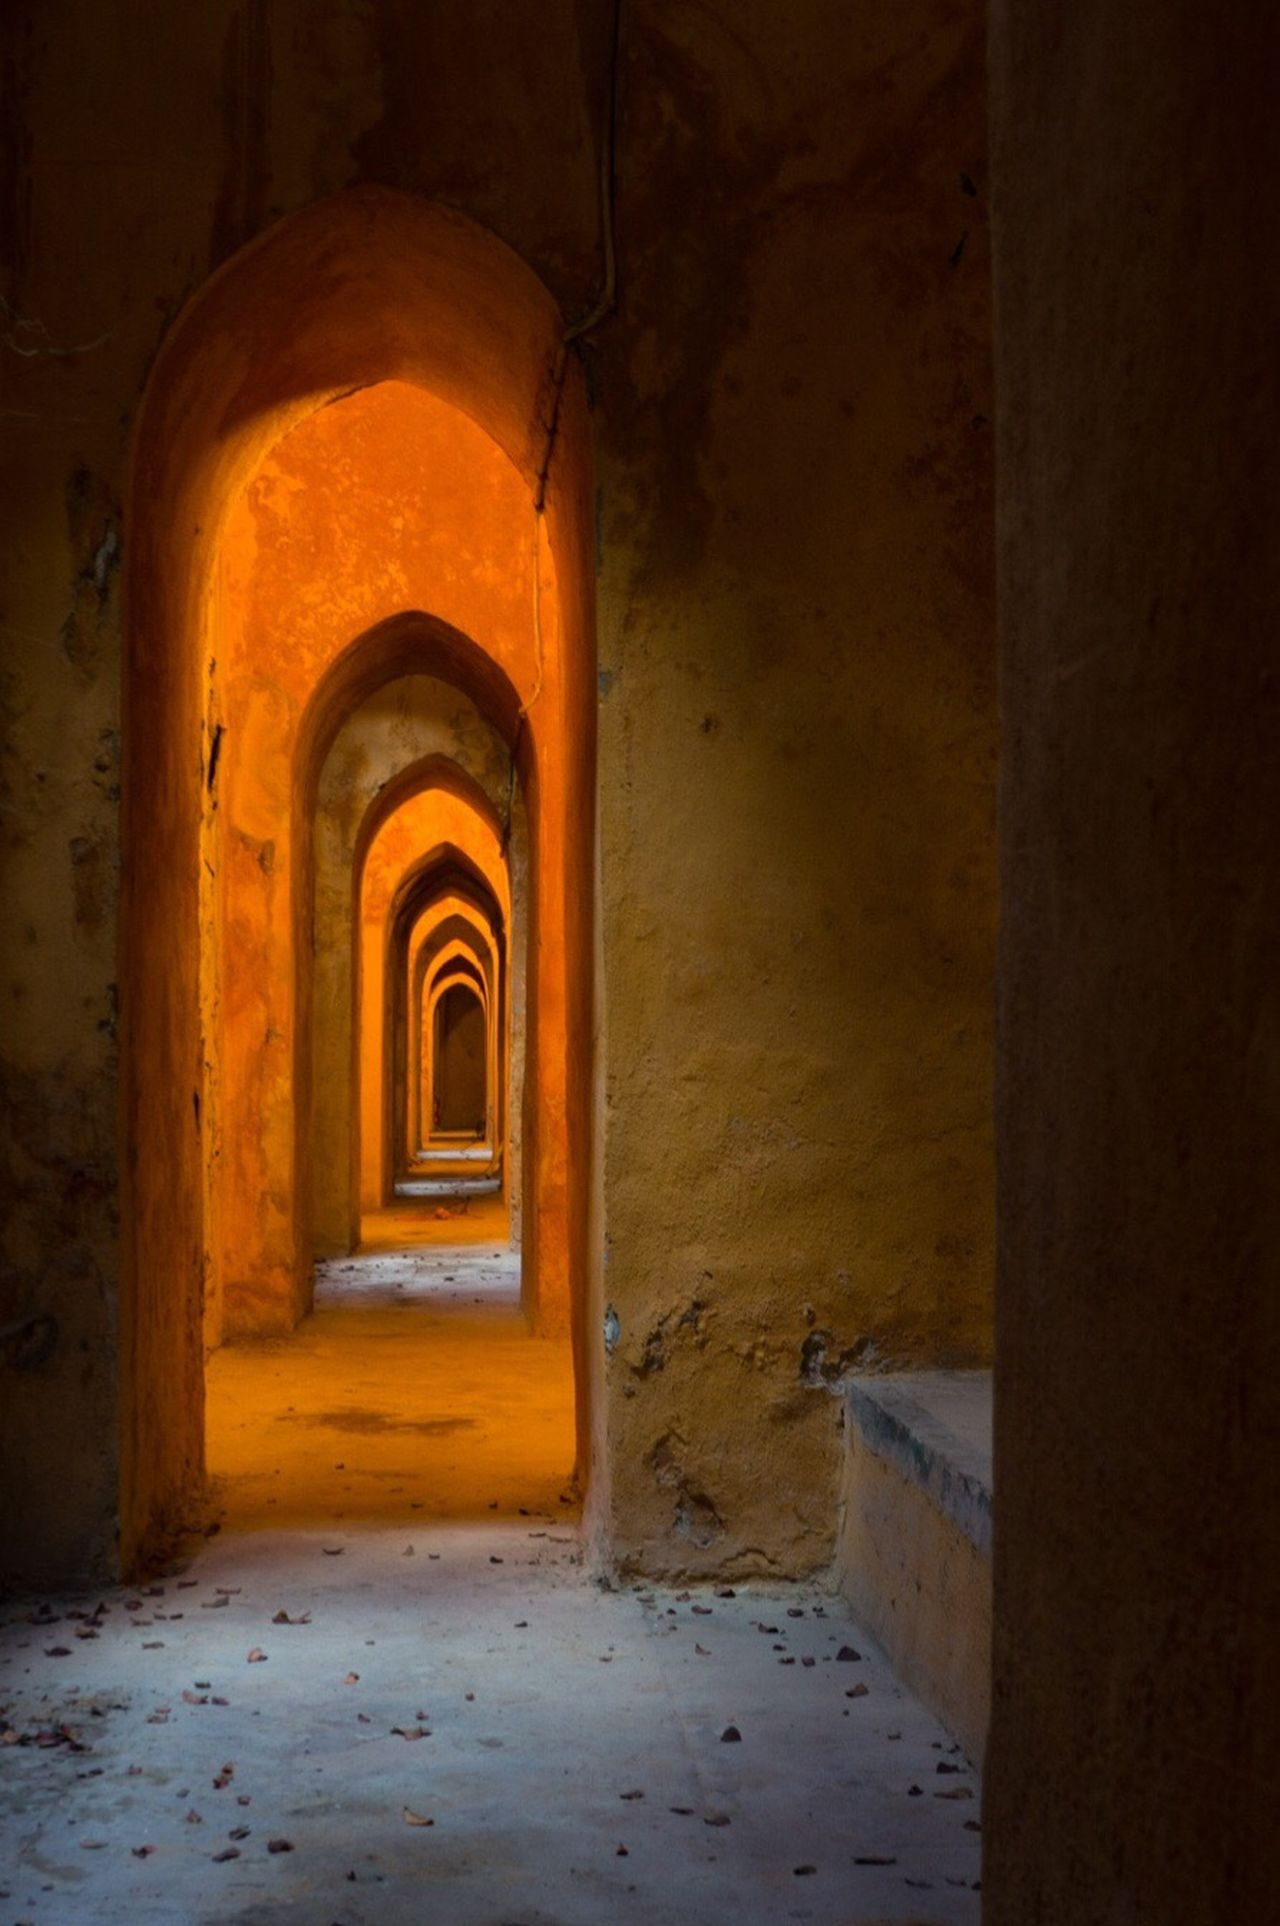 Bath Real Alcazar Sevilla Seville Mudéjar Architecture Light And Shadow Orange Hallway 43 Golden Moments